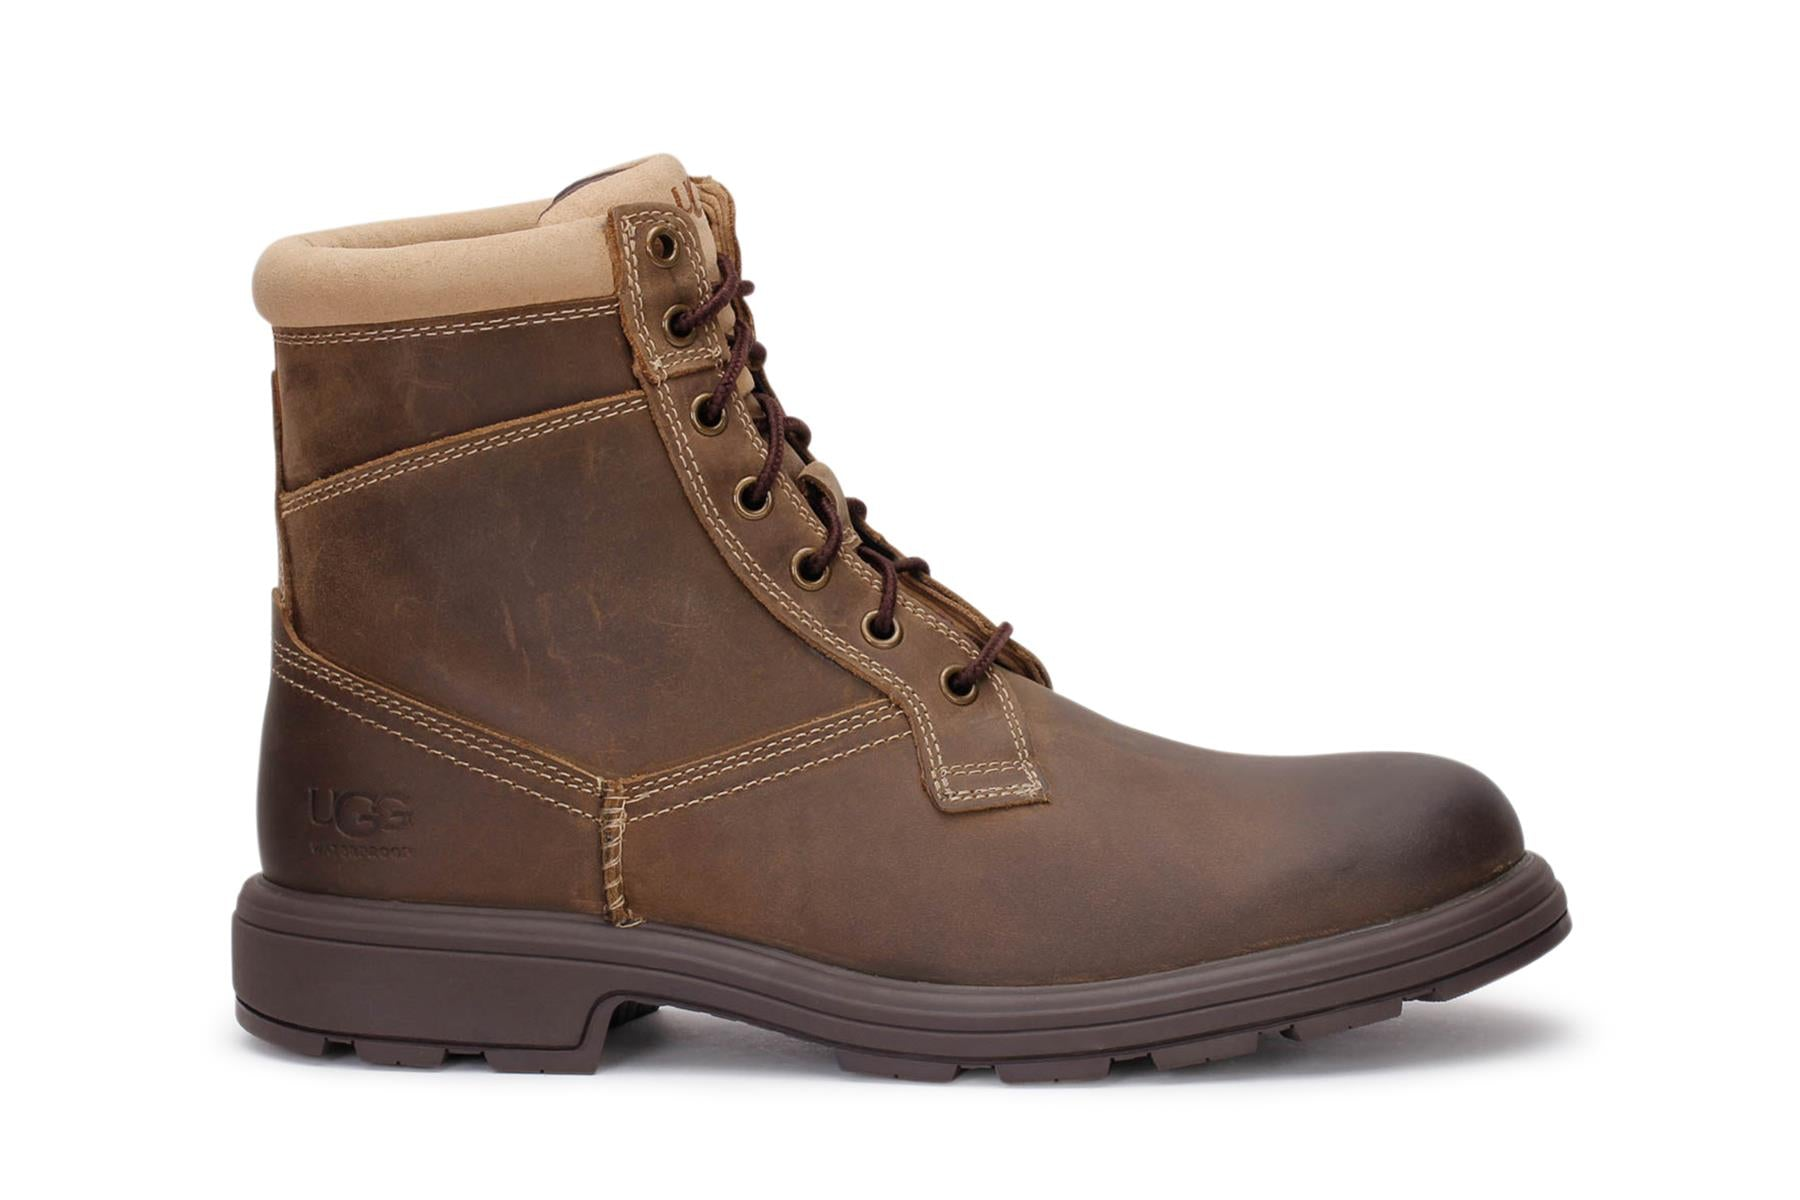 ugg-mens-biltmore-workboot-waterproof-military-sand-boots-main